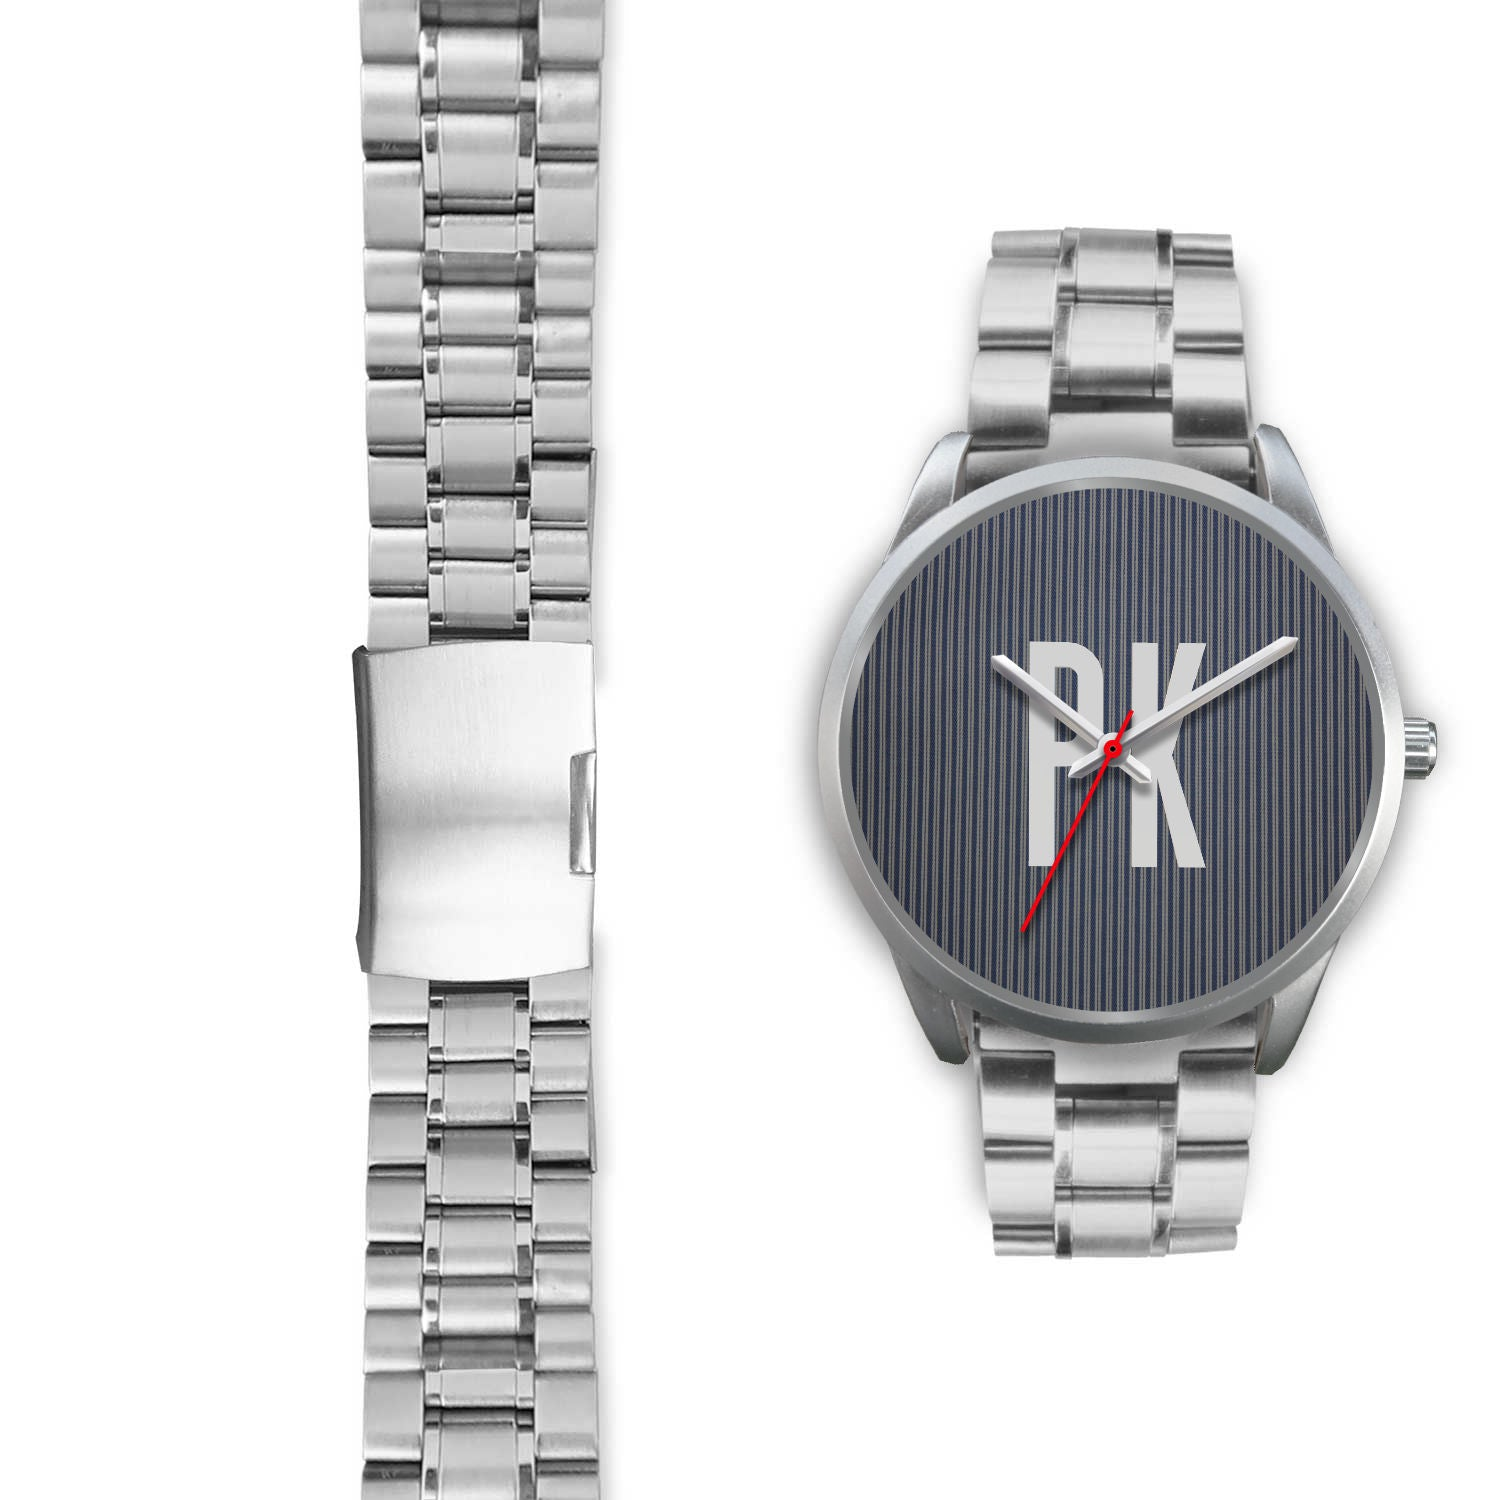 PK KLASS PINSTRIPE - UNISEX WATCH LEATHER AND METAL BANDS